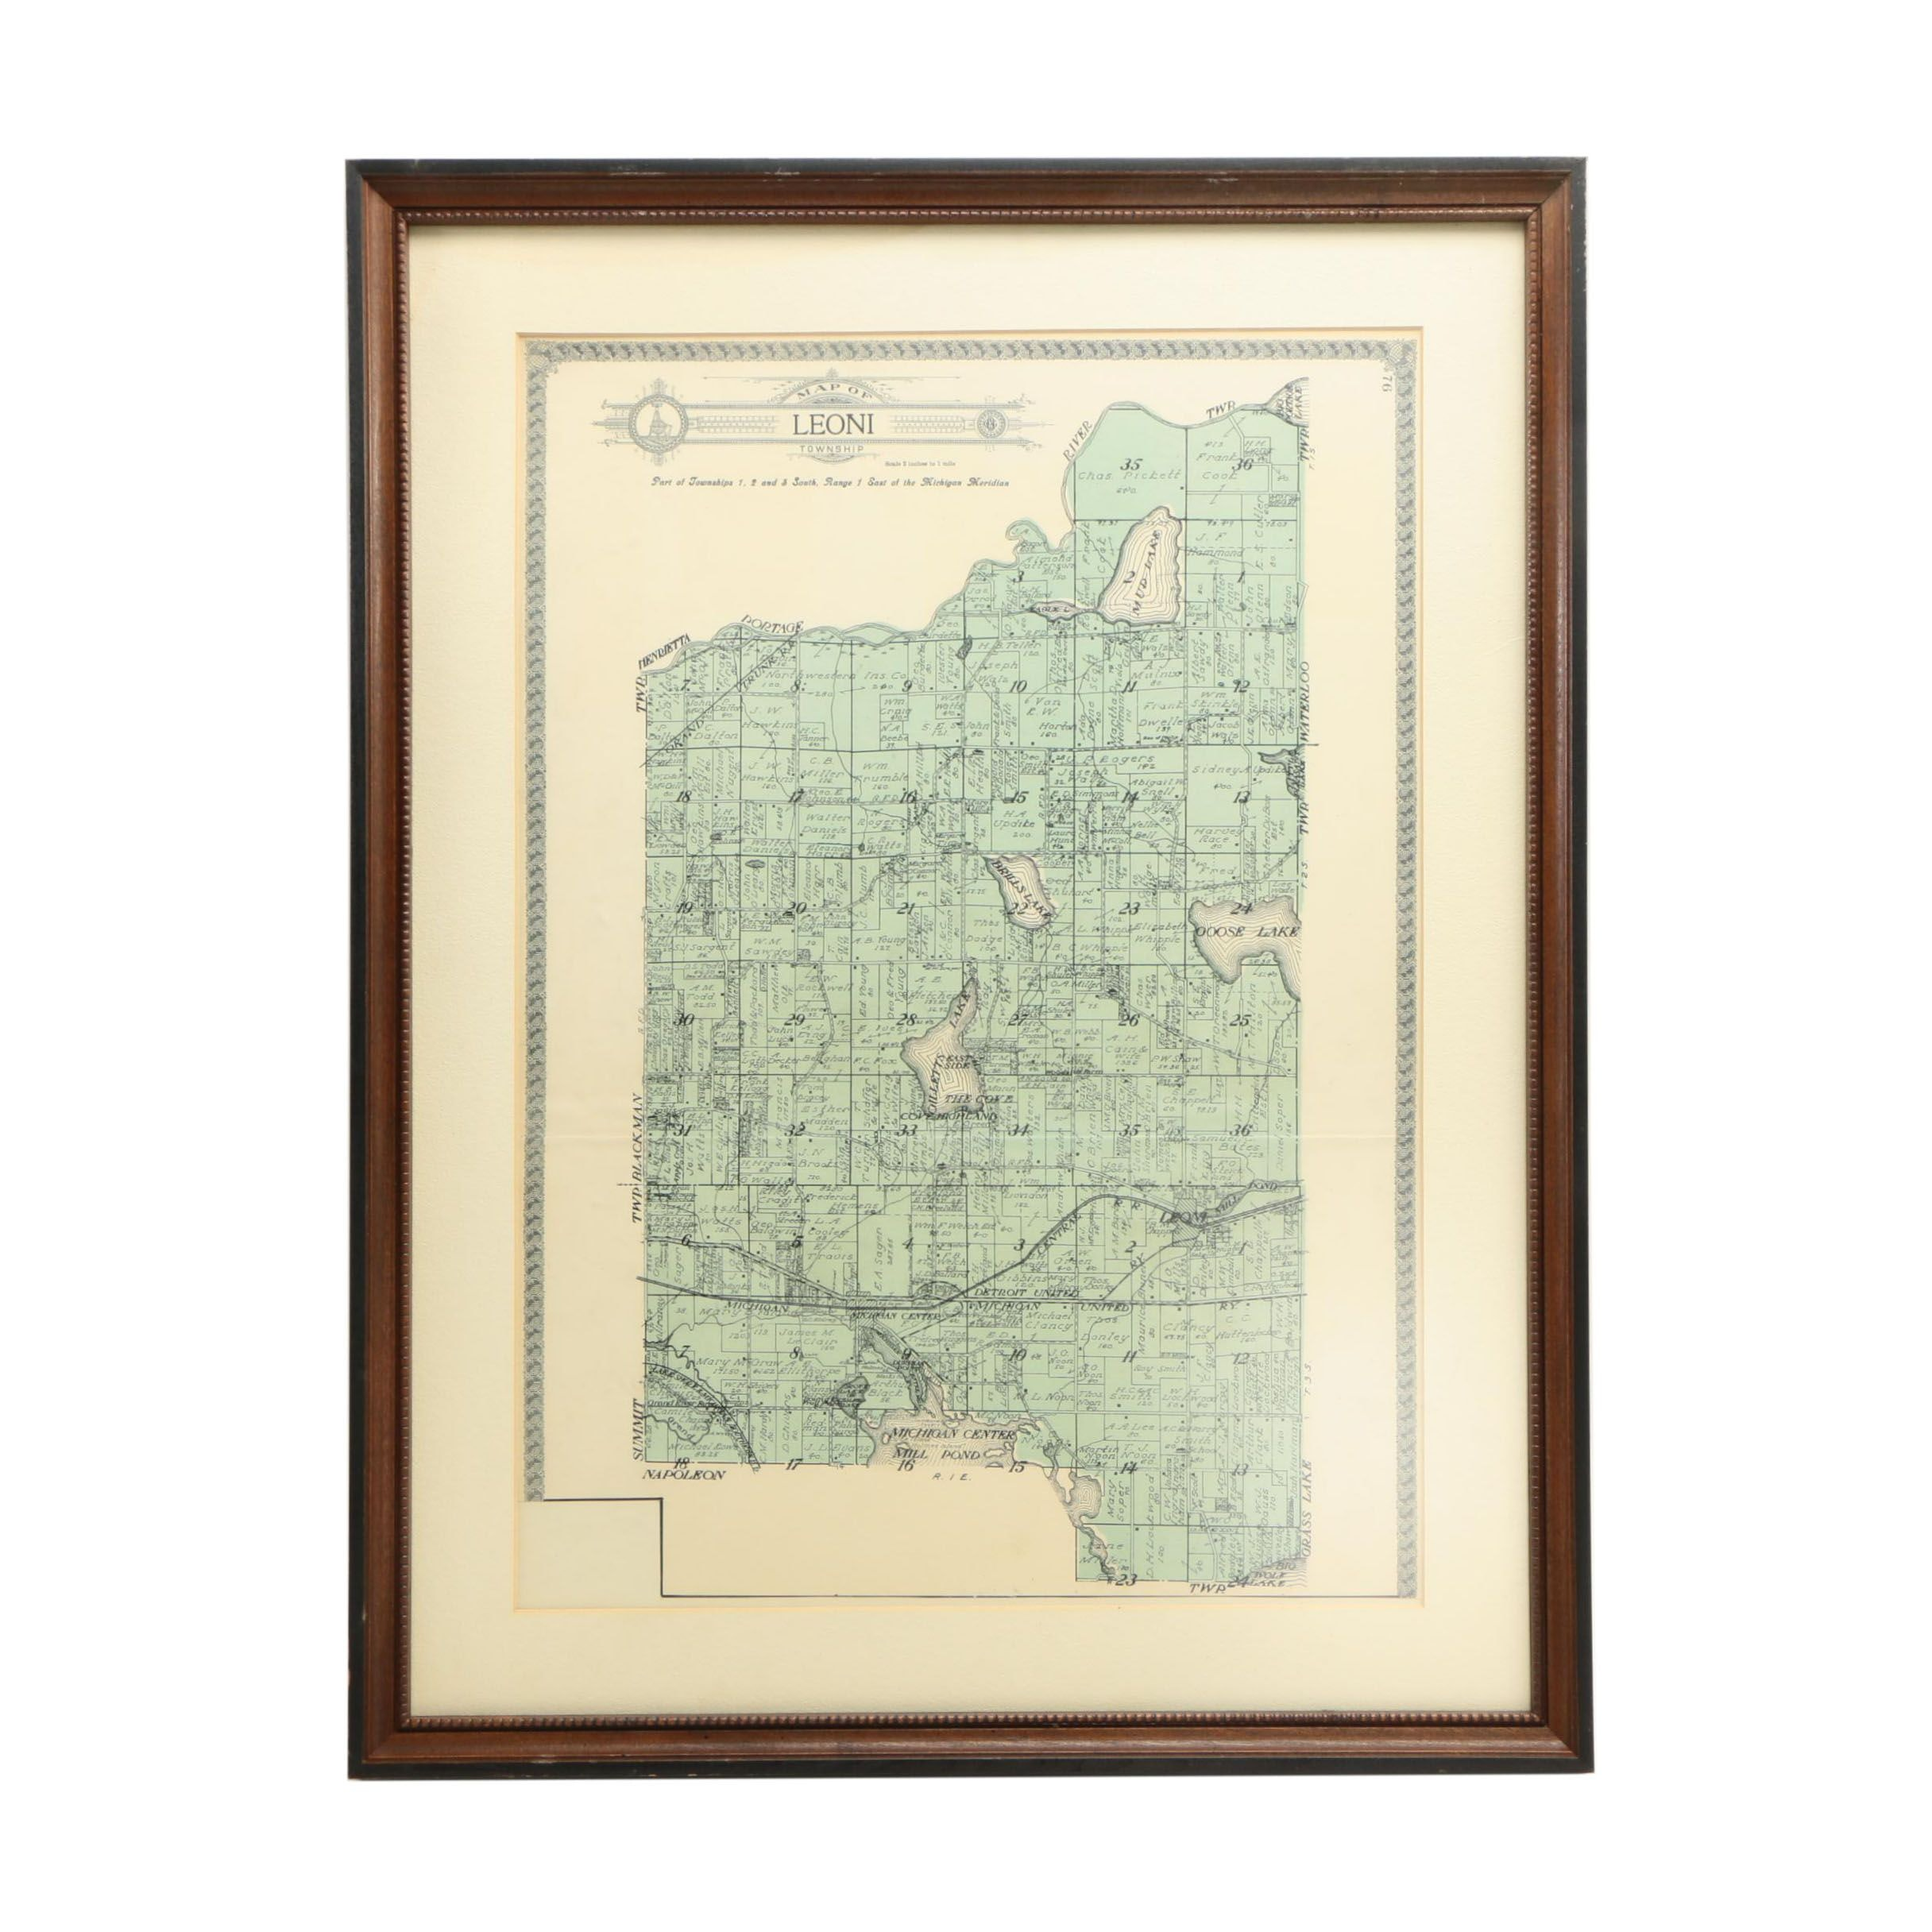 Framed Map of Leoni Township, Michigan, 1900s